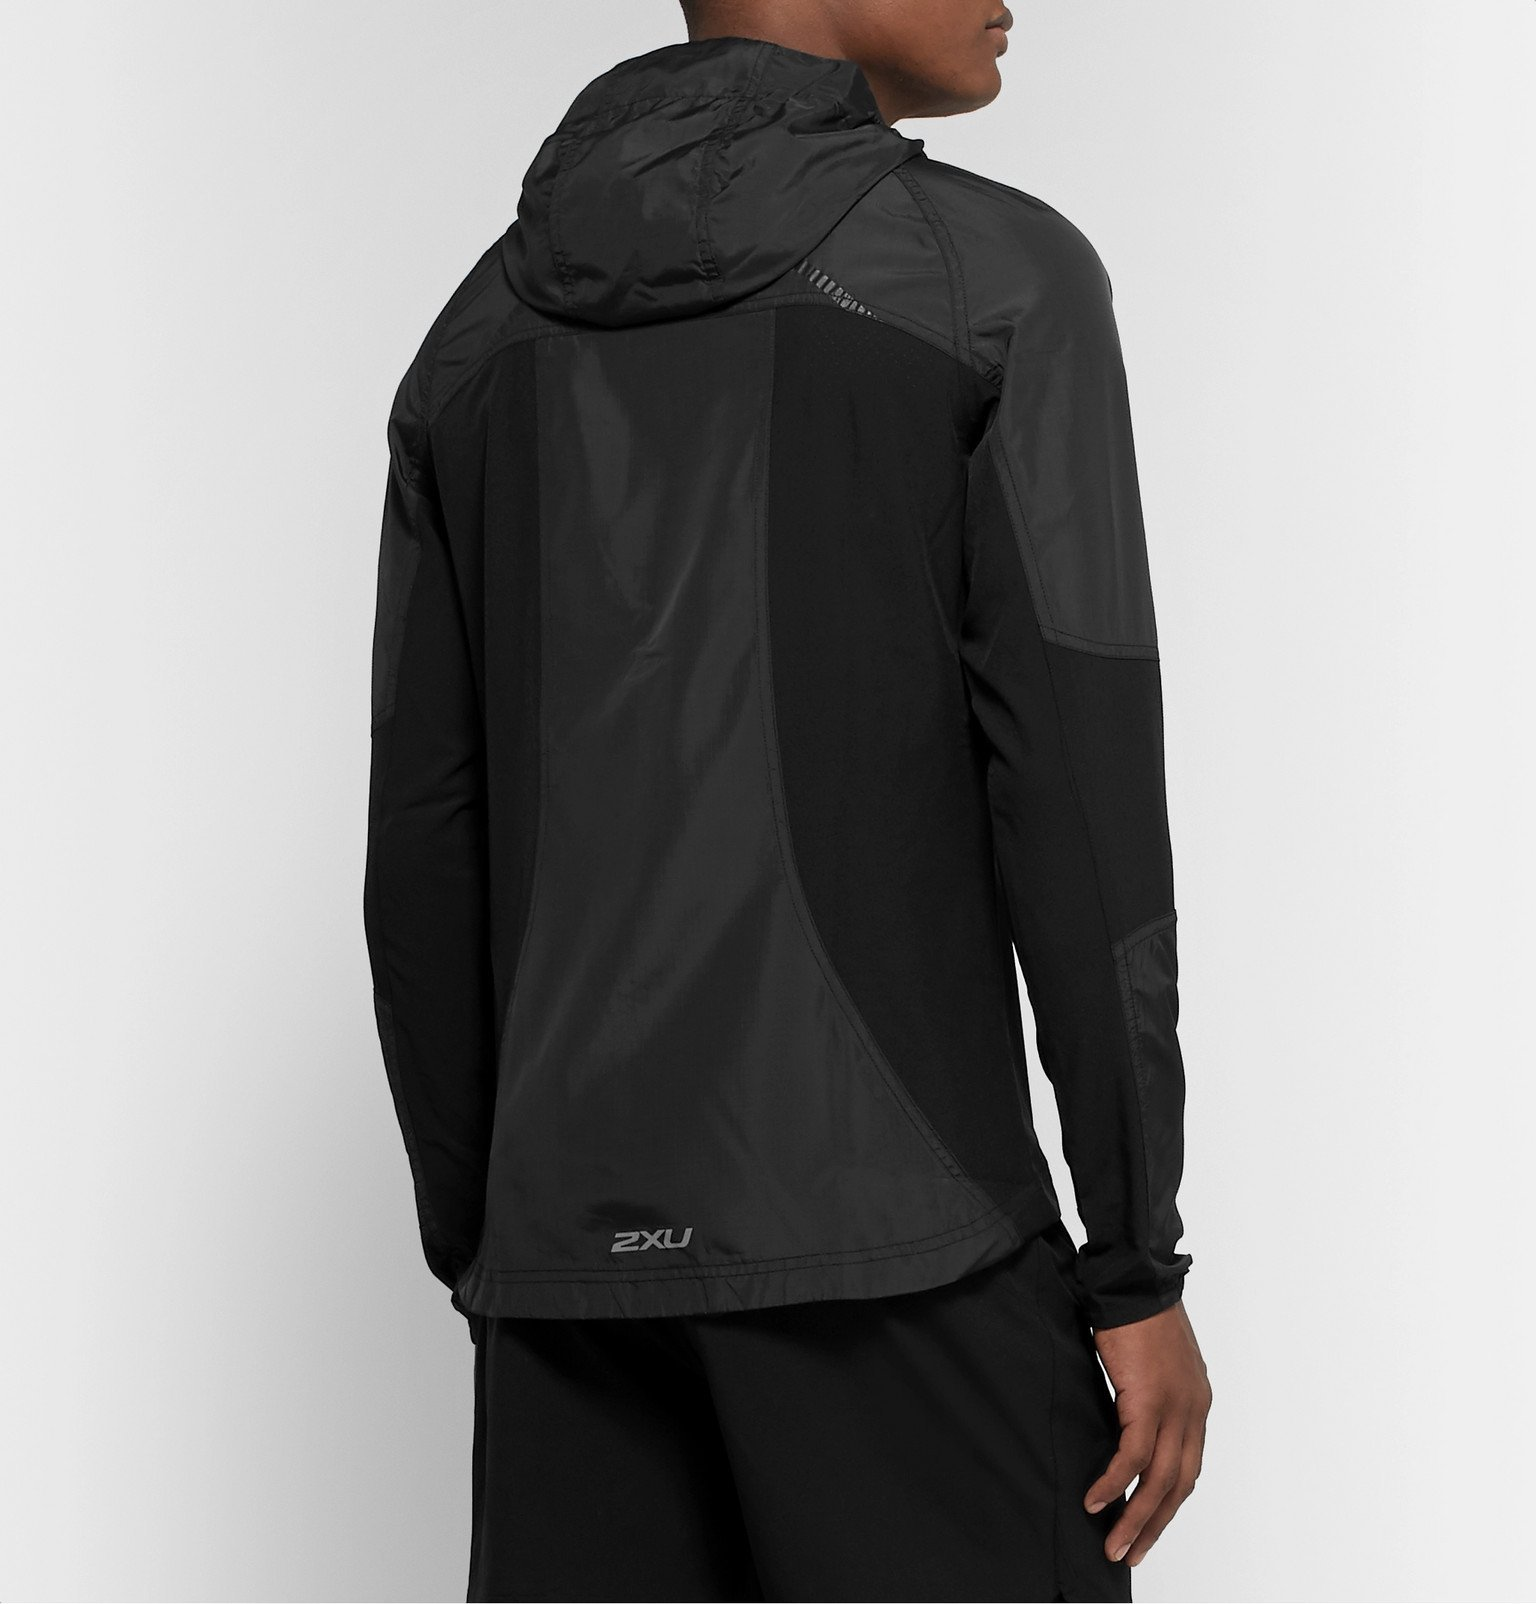 2XU - XVENT Shell and Mesh Hooded Jacket - Black